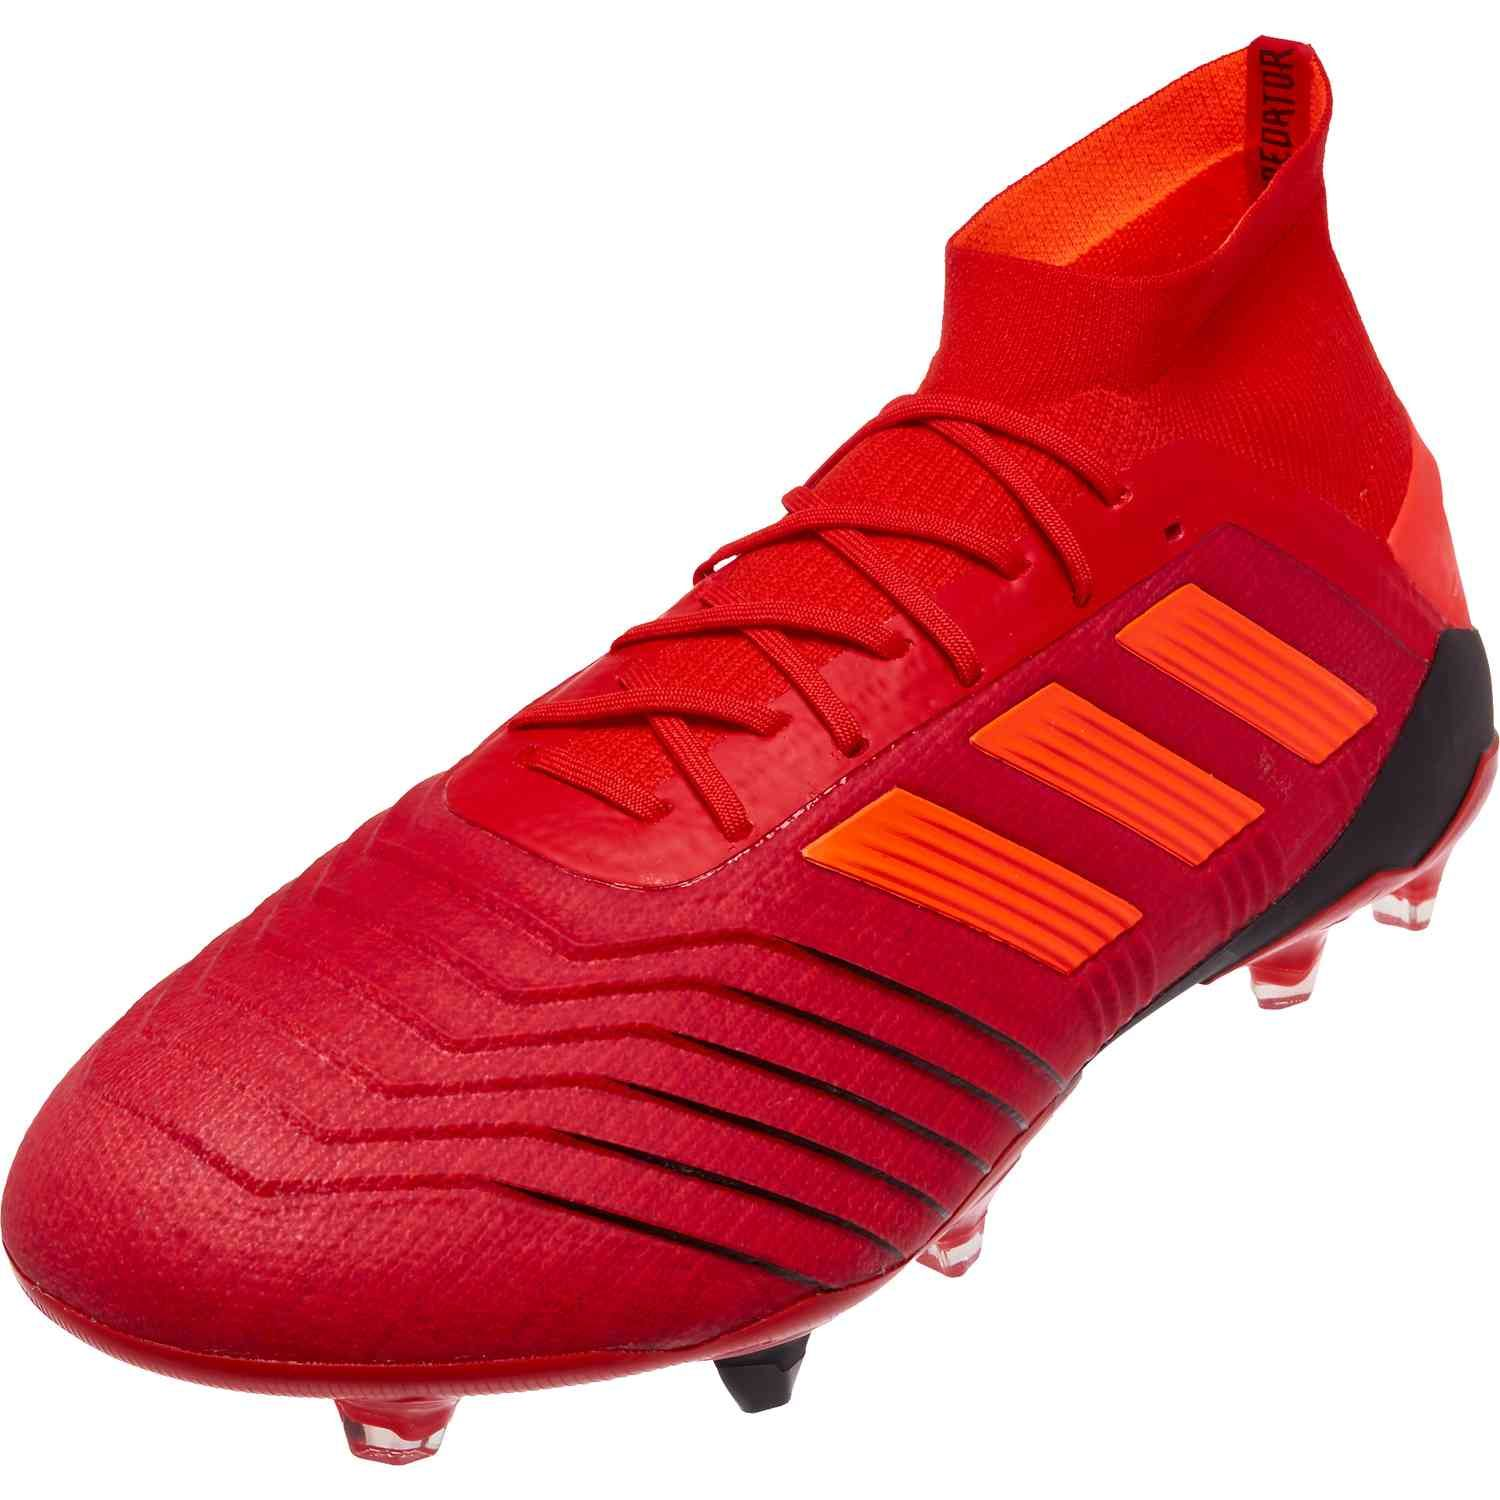 0e767fa1d48 The 1st adidas Predator 19.1 shoe is here. Get it from SoccerPro!